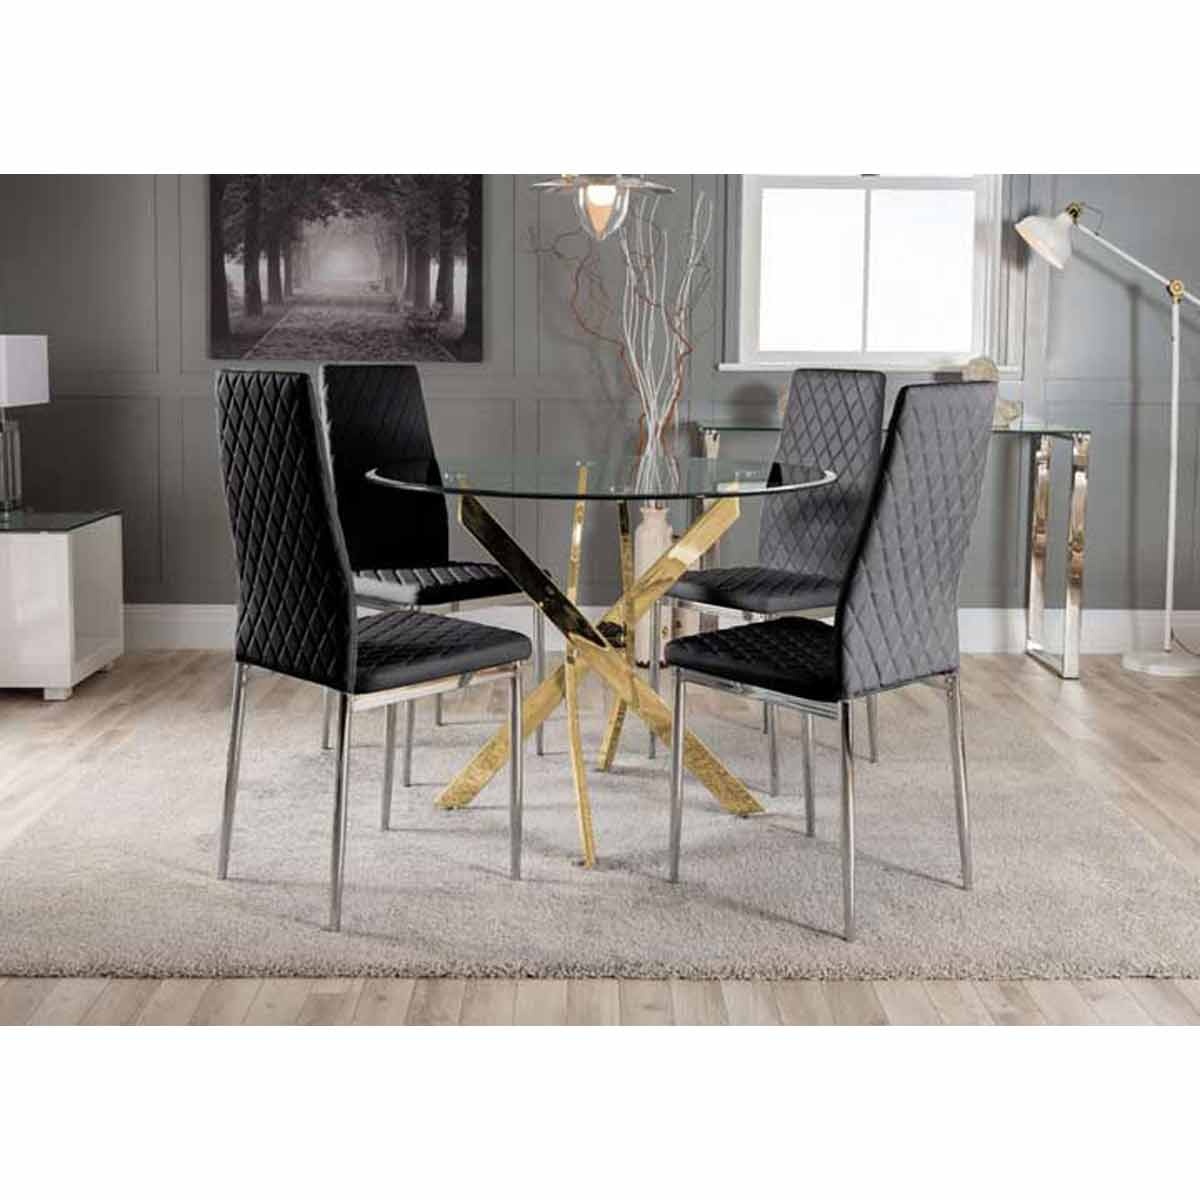 Furniture Box Novara Gold Metal Round Glass Dining Table And 4 Black Milan Dining Chairs